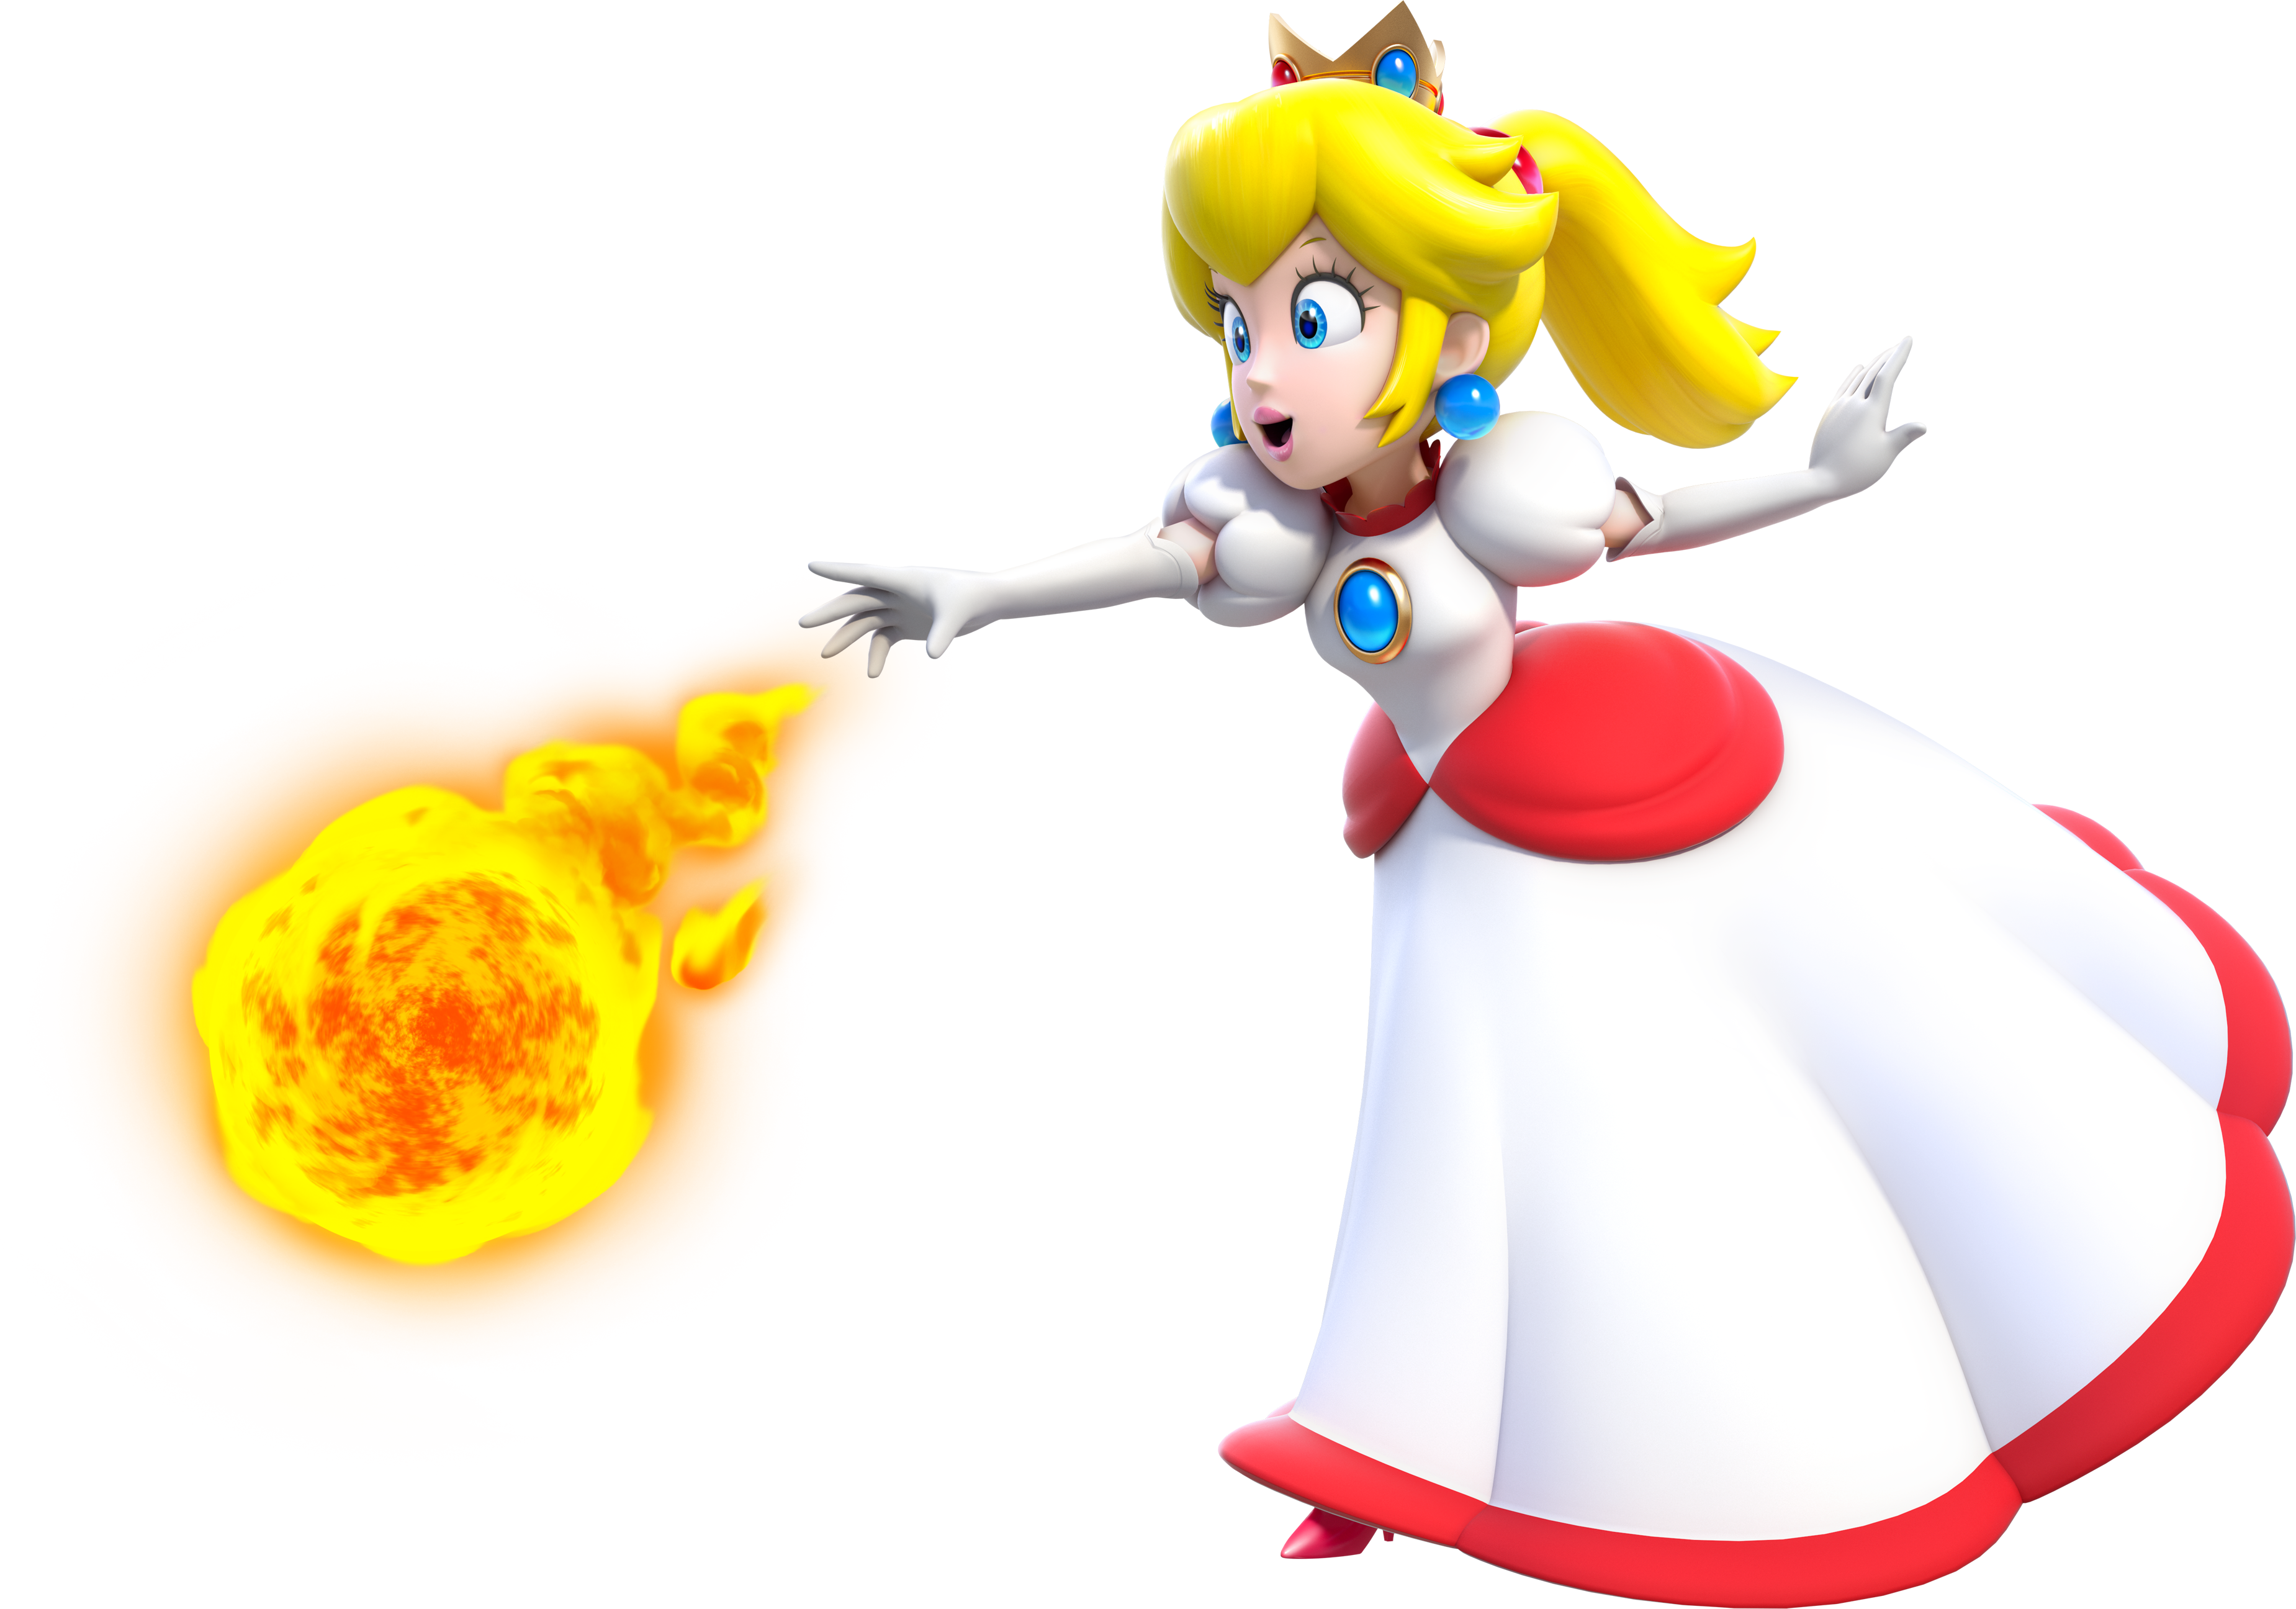 Fireflower Princess Peach